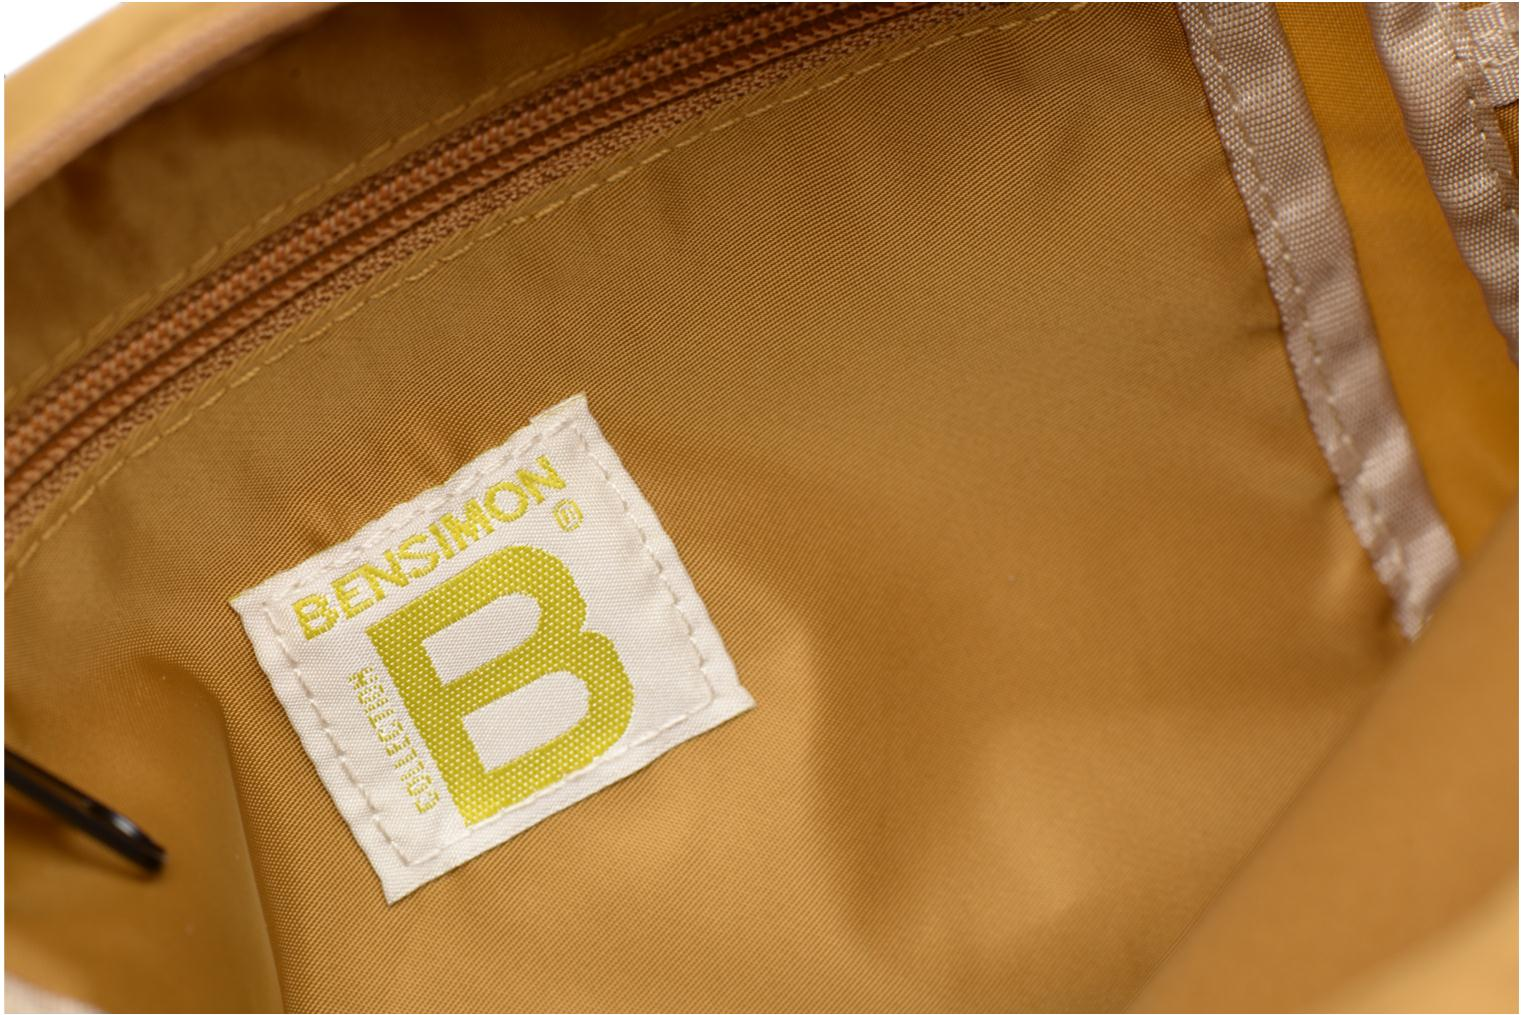 Curry Besace Curry Besace Small Bensimon Bensimon Small Bensimon Besace Small Curry fxqpa6